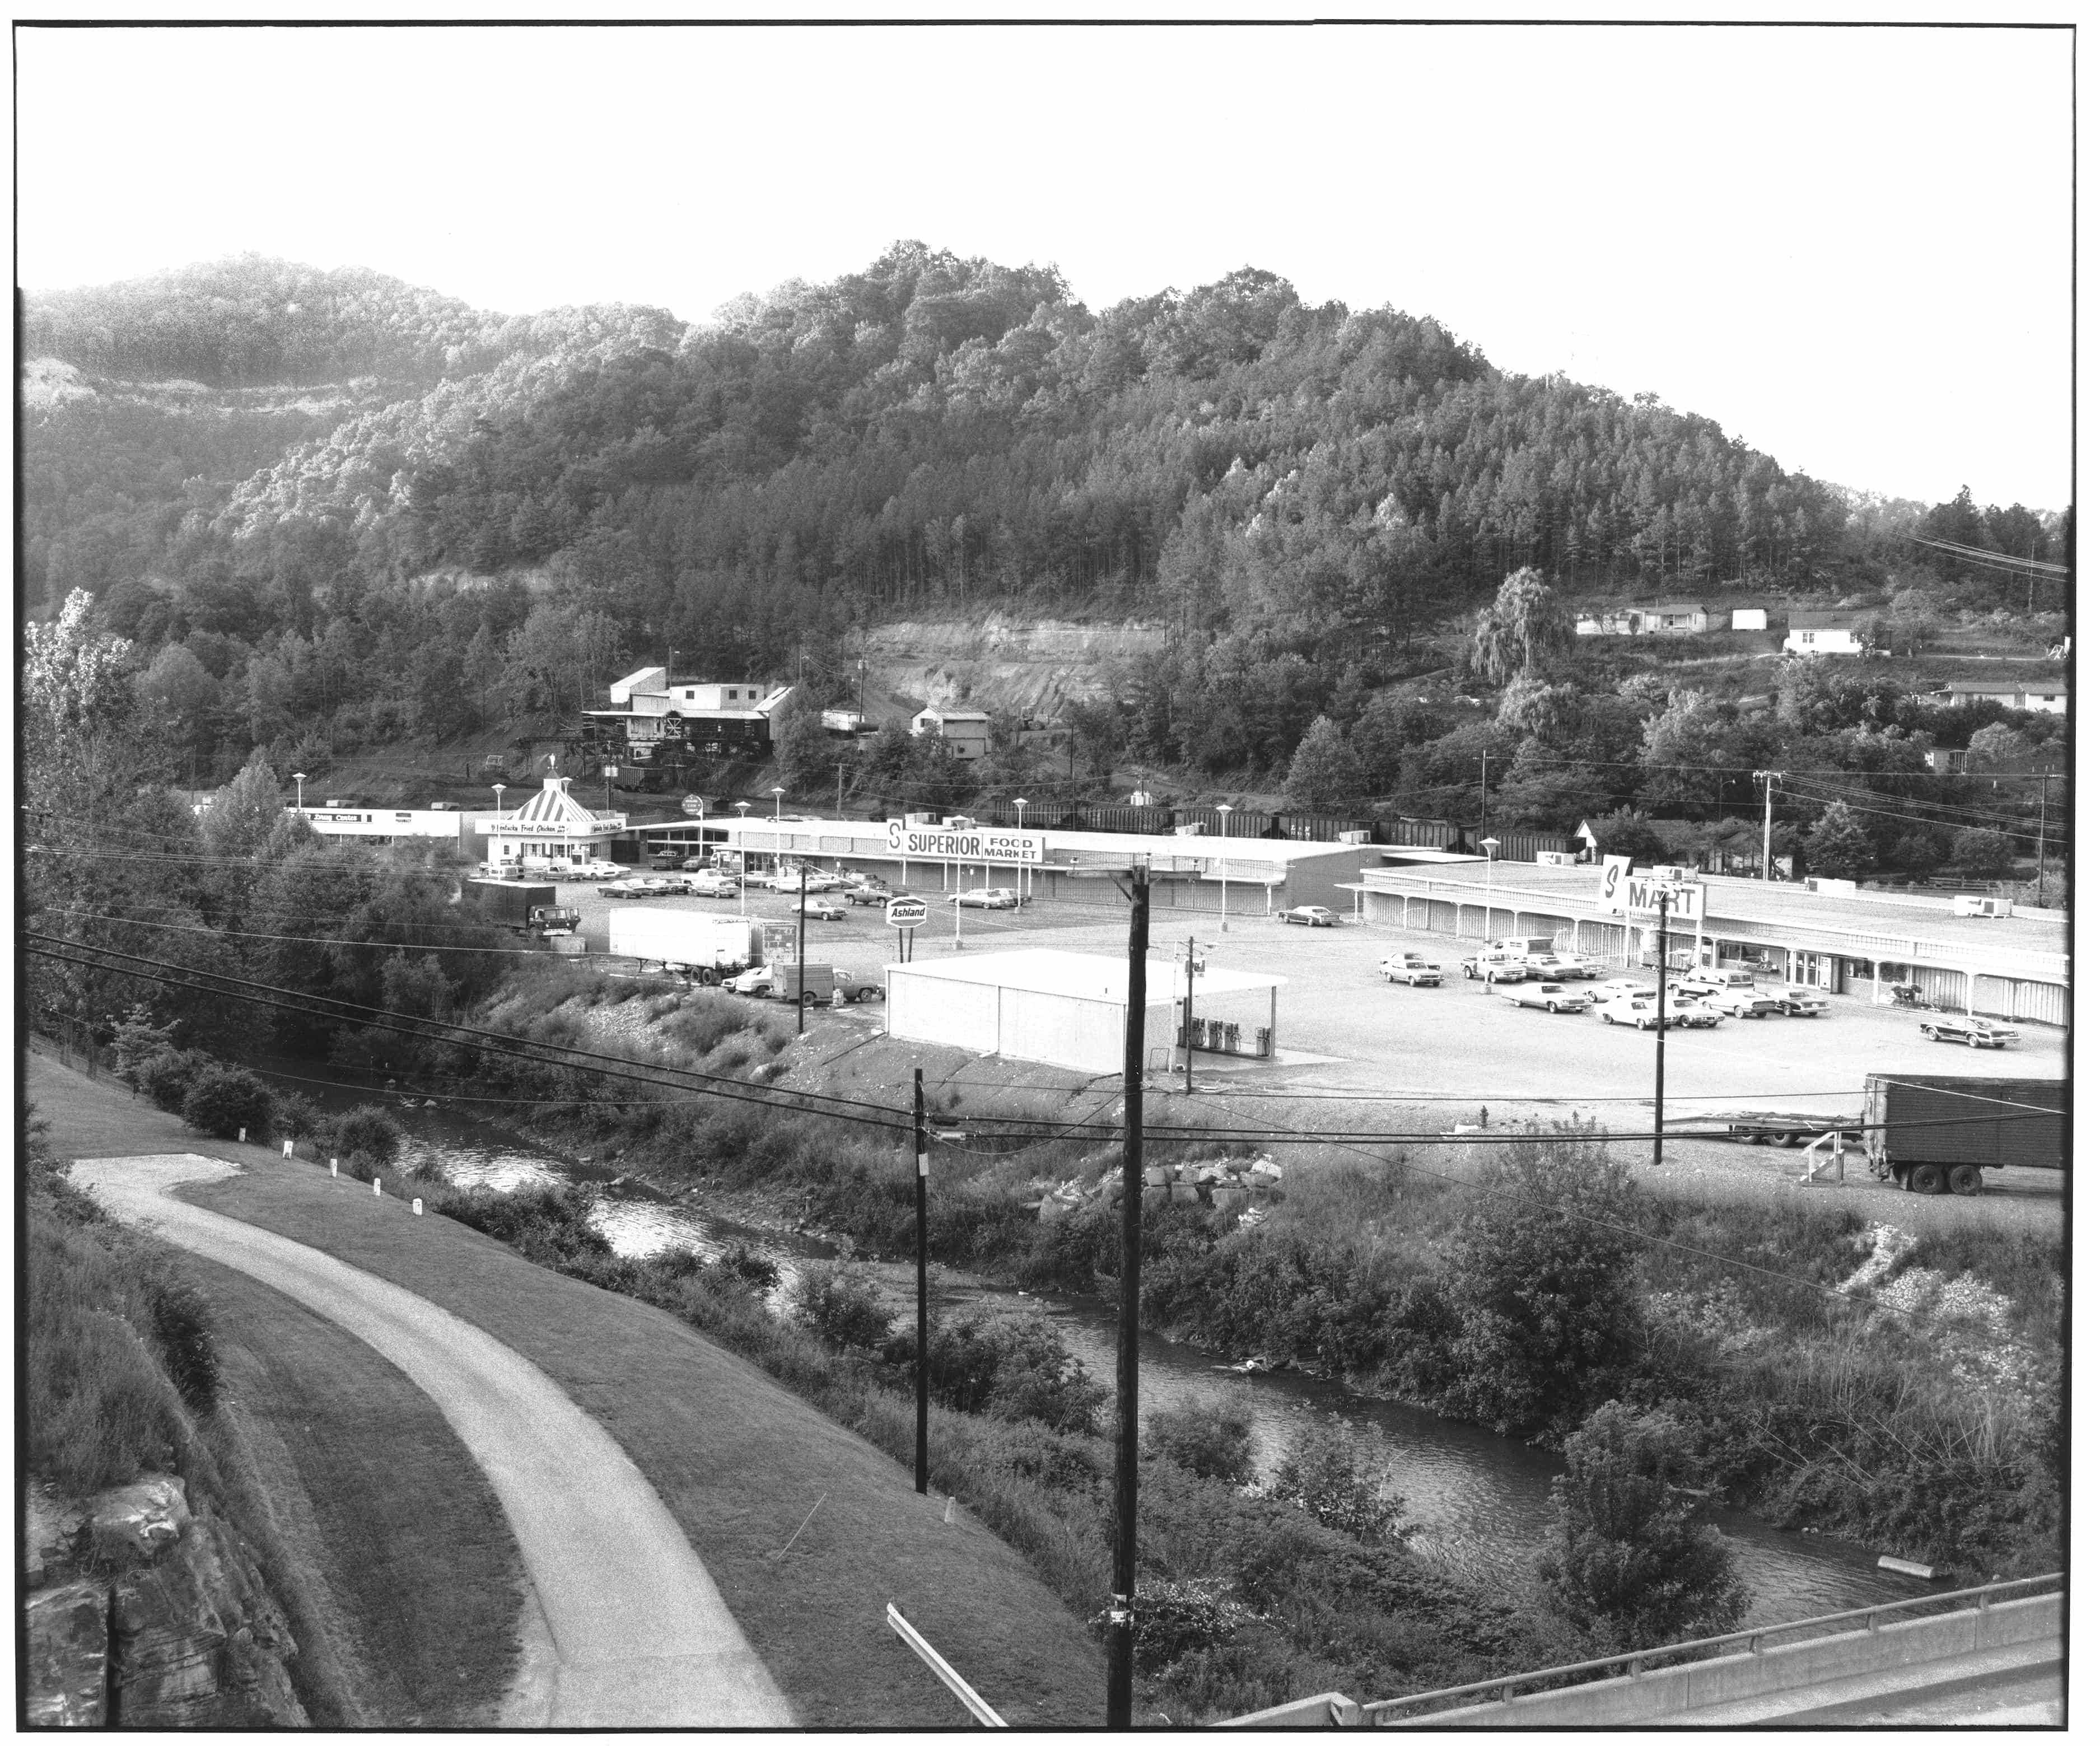 Whitesburg Shopping Center C-126-11